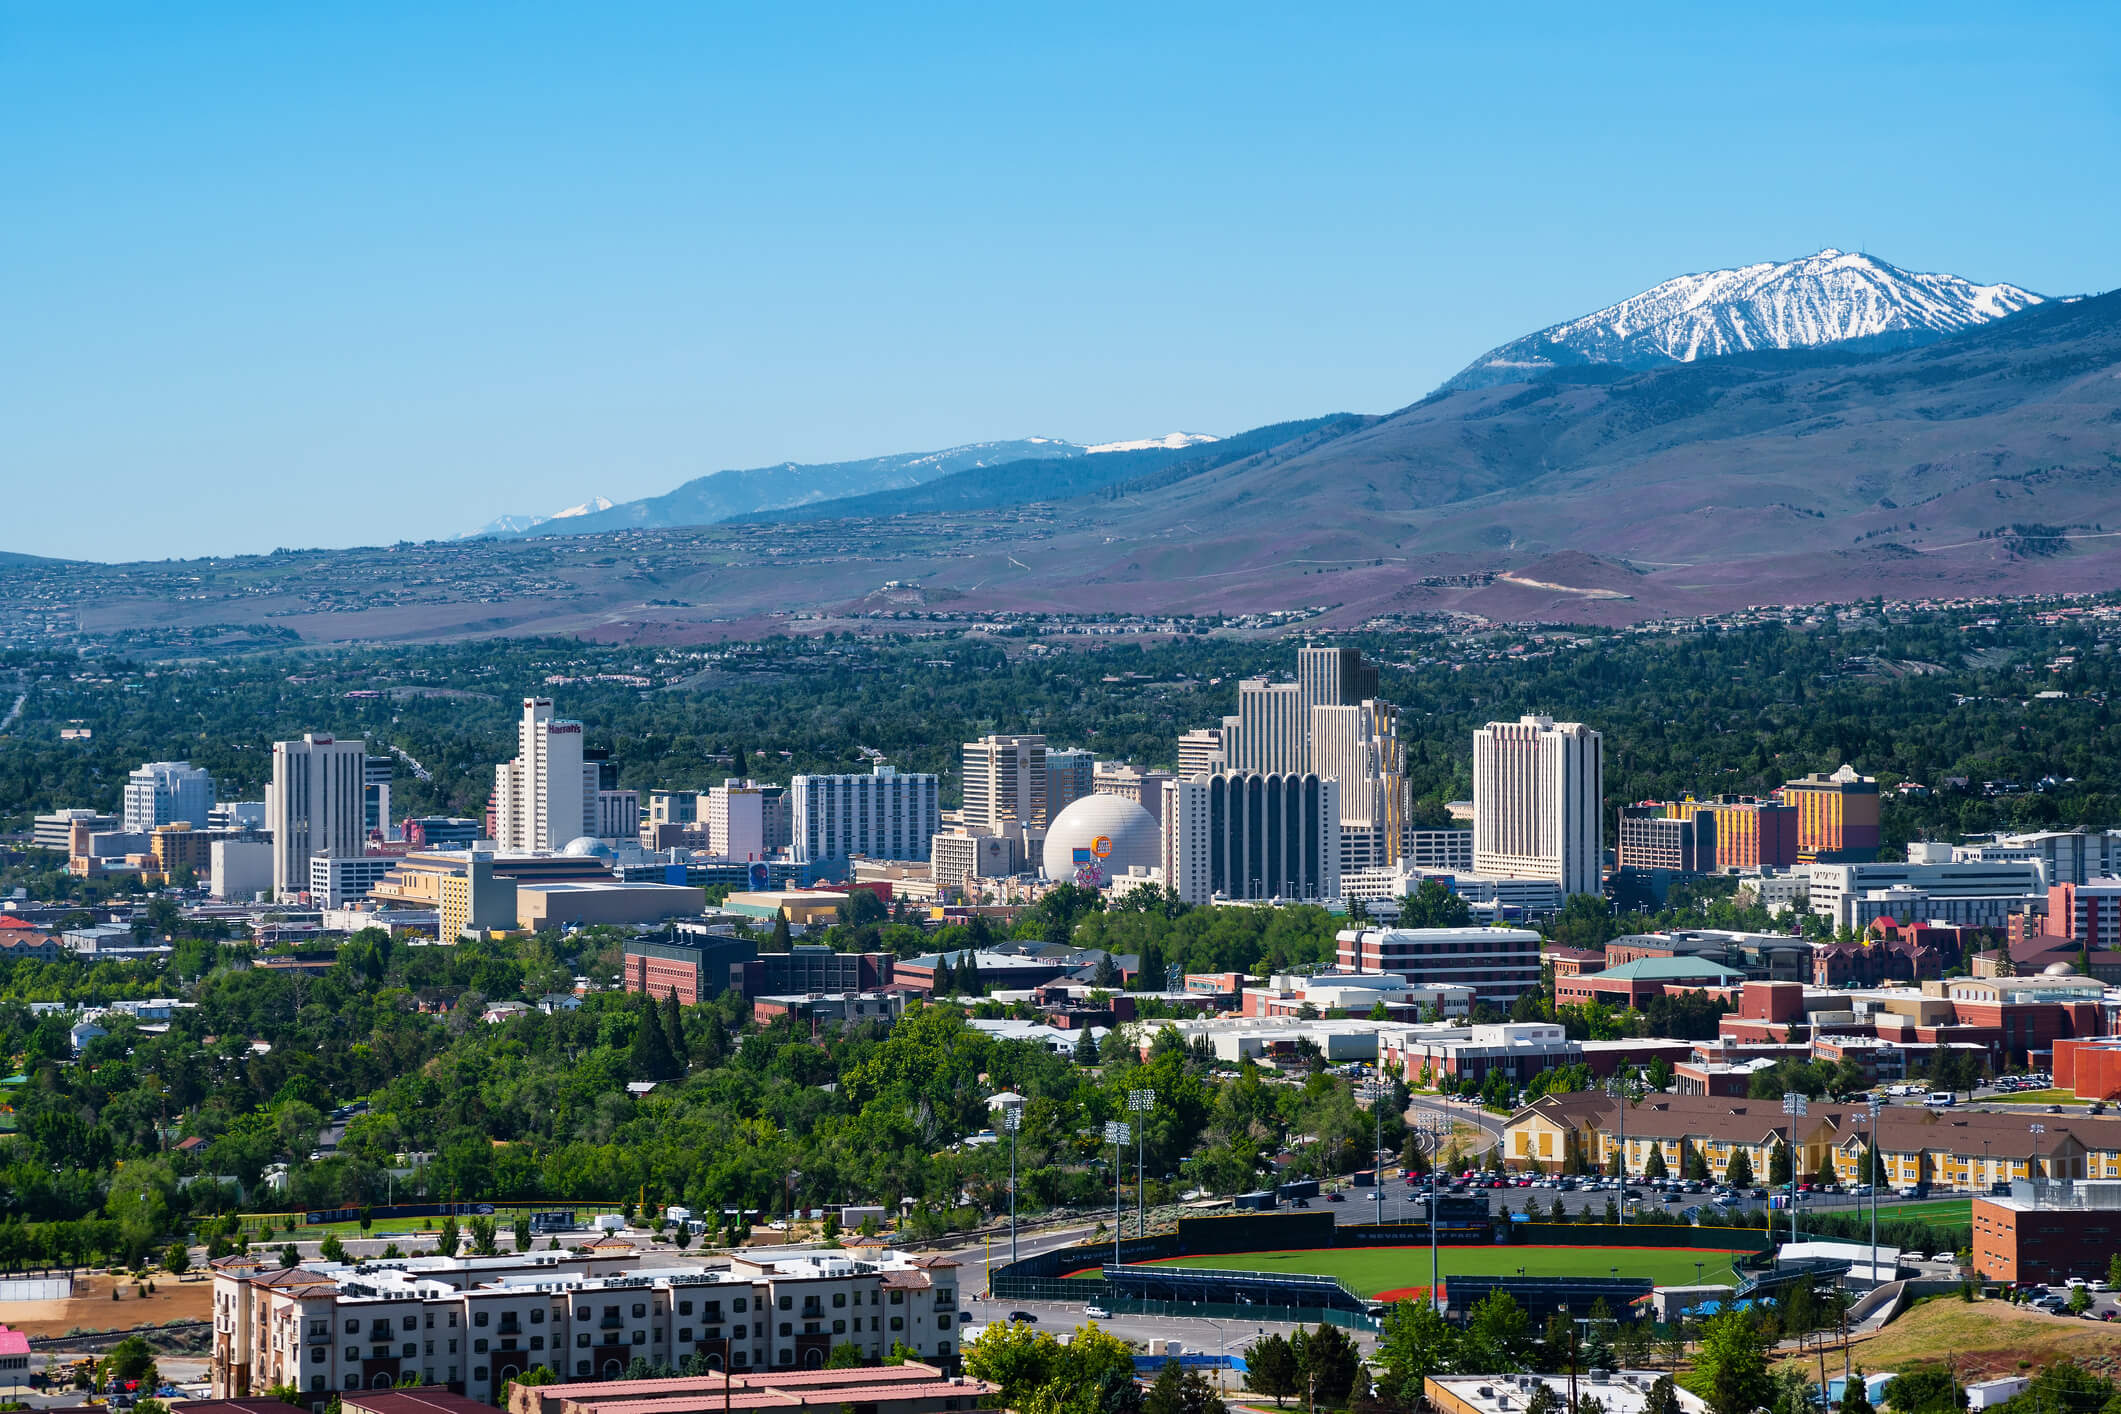 this is a photo of downtown Reno, Nevada